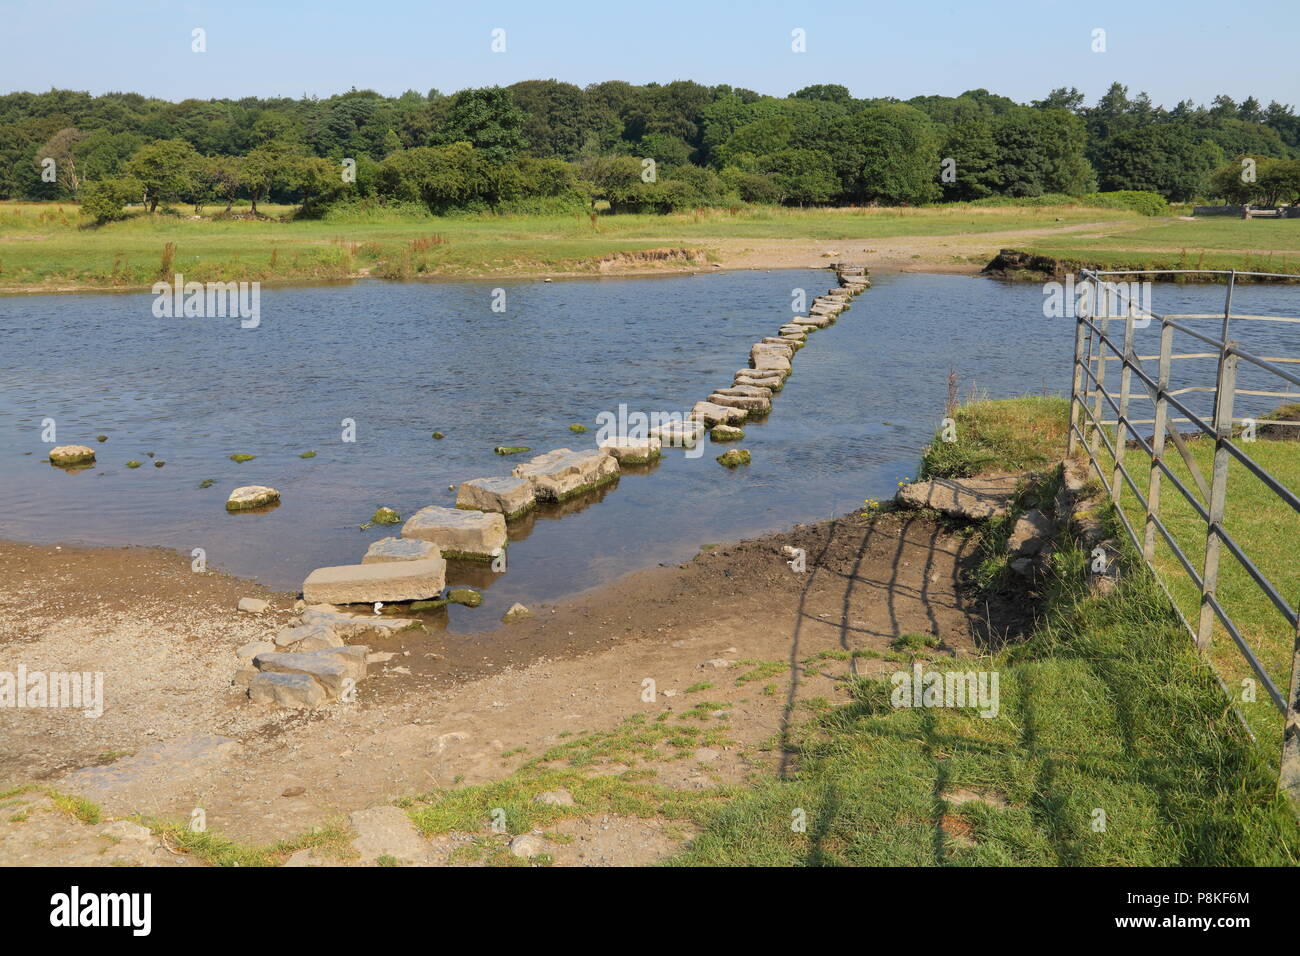 The castle ruins stepping stones in Ogmore village adjacent to the ruined castle, passable during most of the year this is a popular foot crossing. - Stock Image